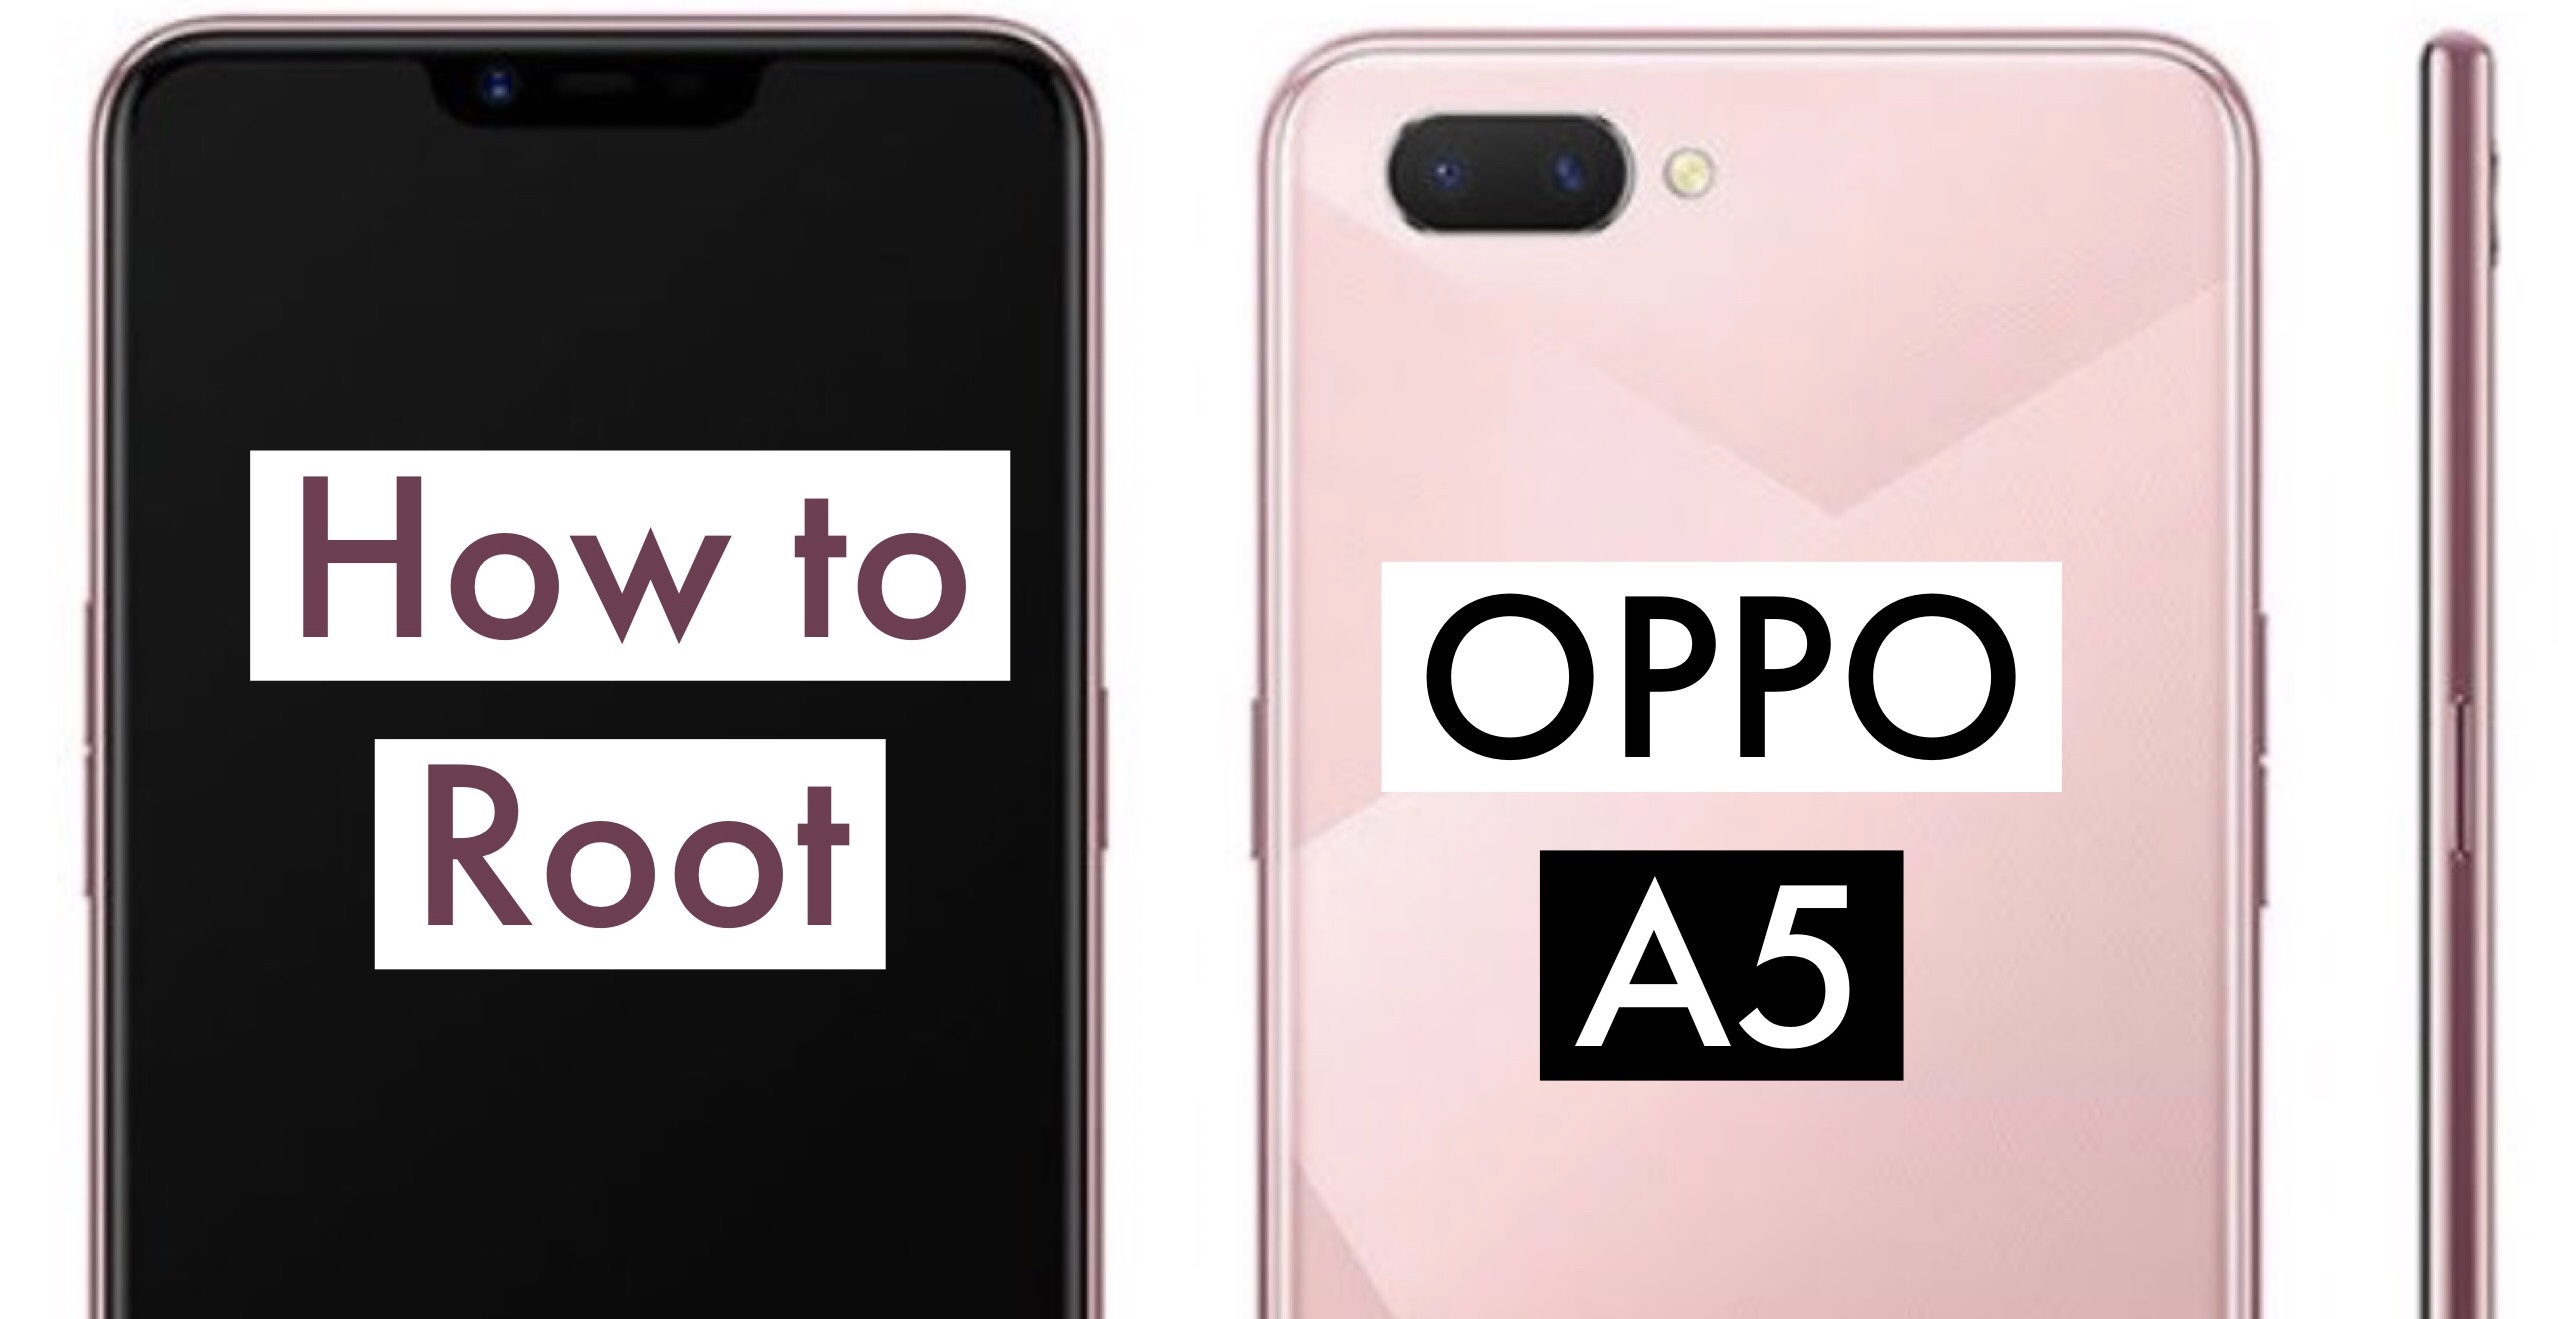 How to Root OPPO A5? SuperSU & Magisk + Two More Methods!